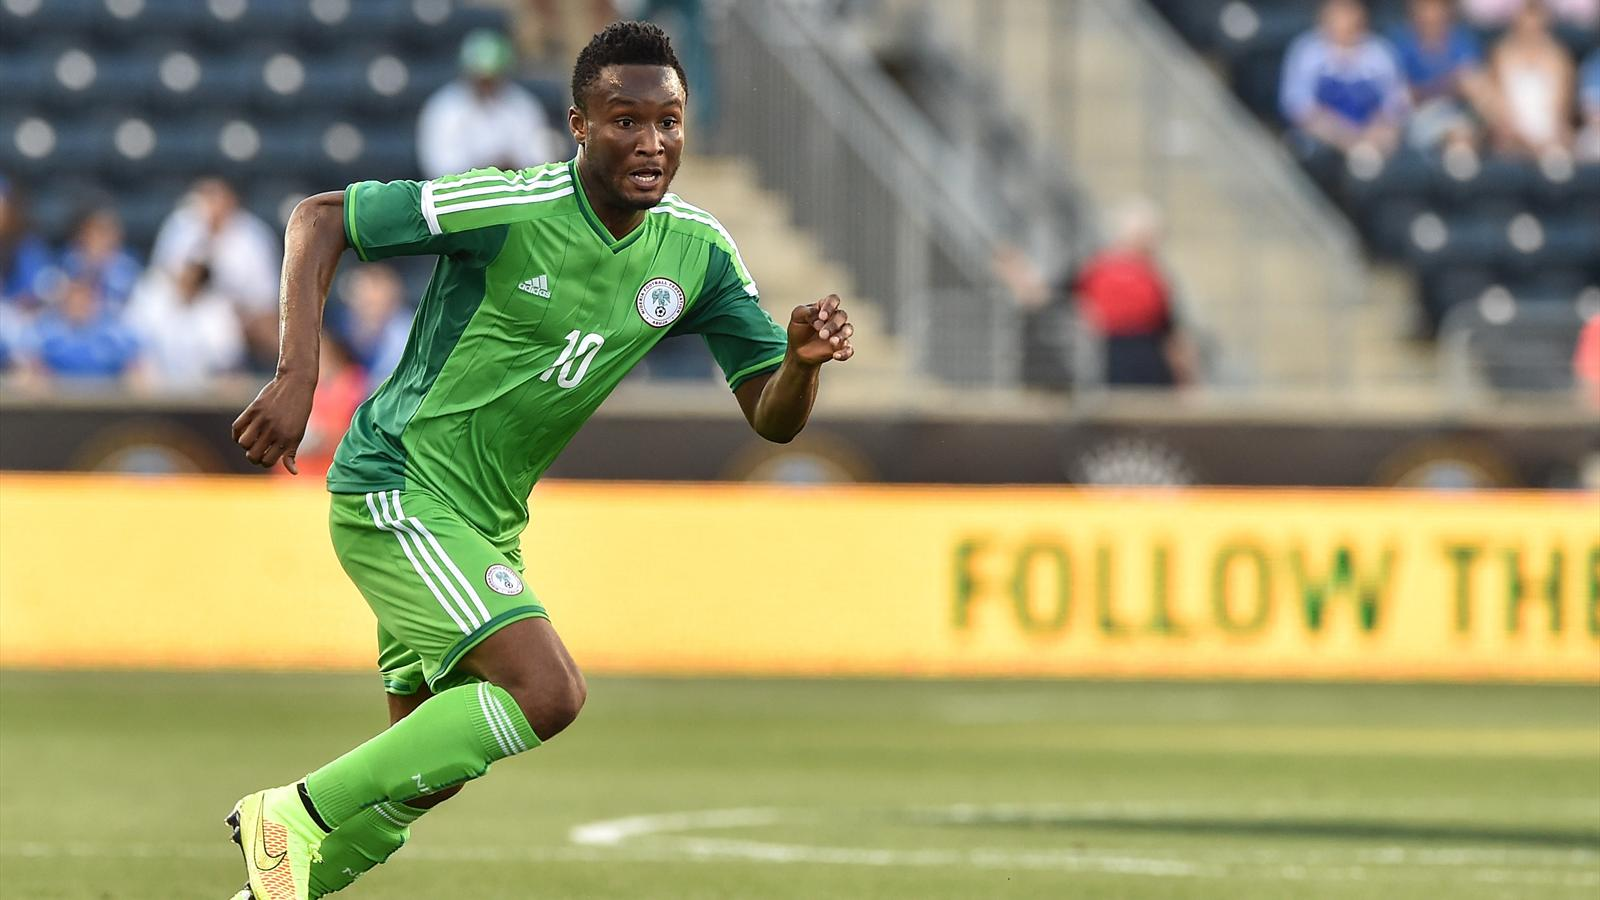 Chelsea midfielder Mikel Obi named in Siasia's 18-man Olympic squad